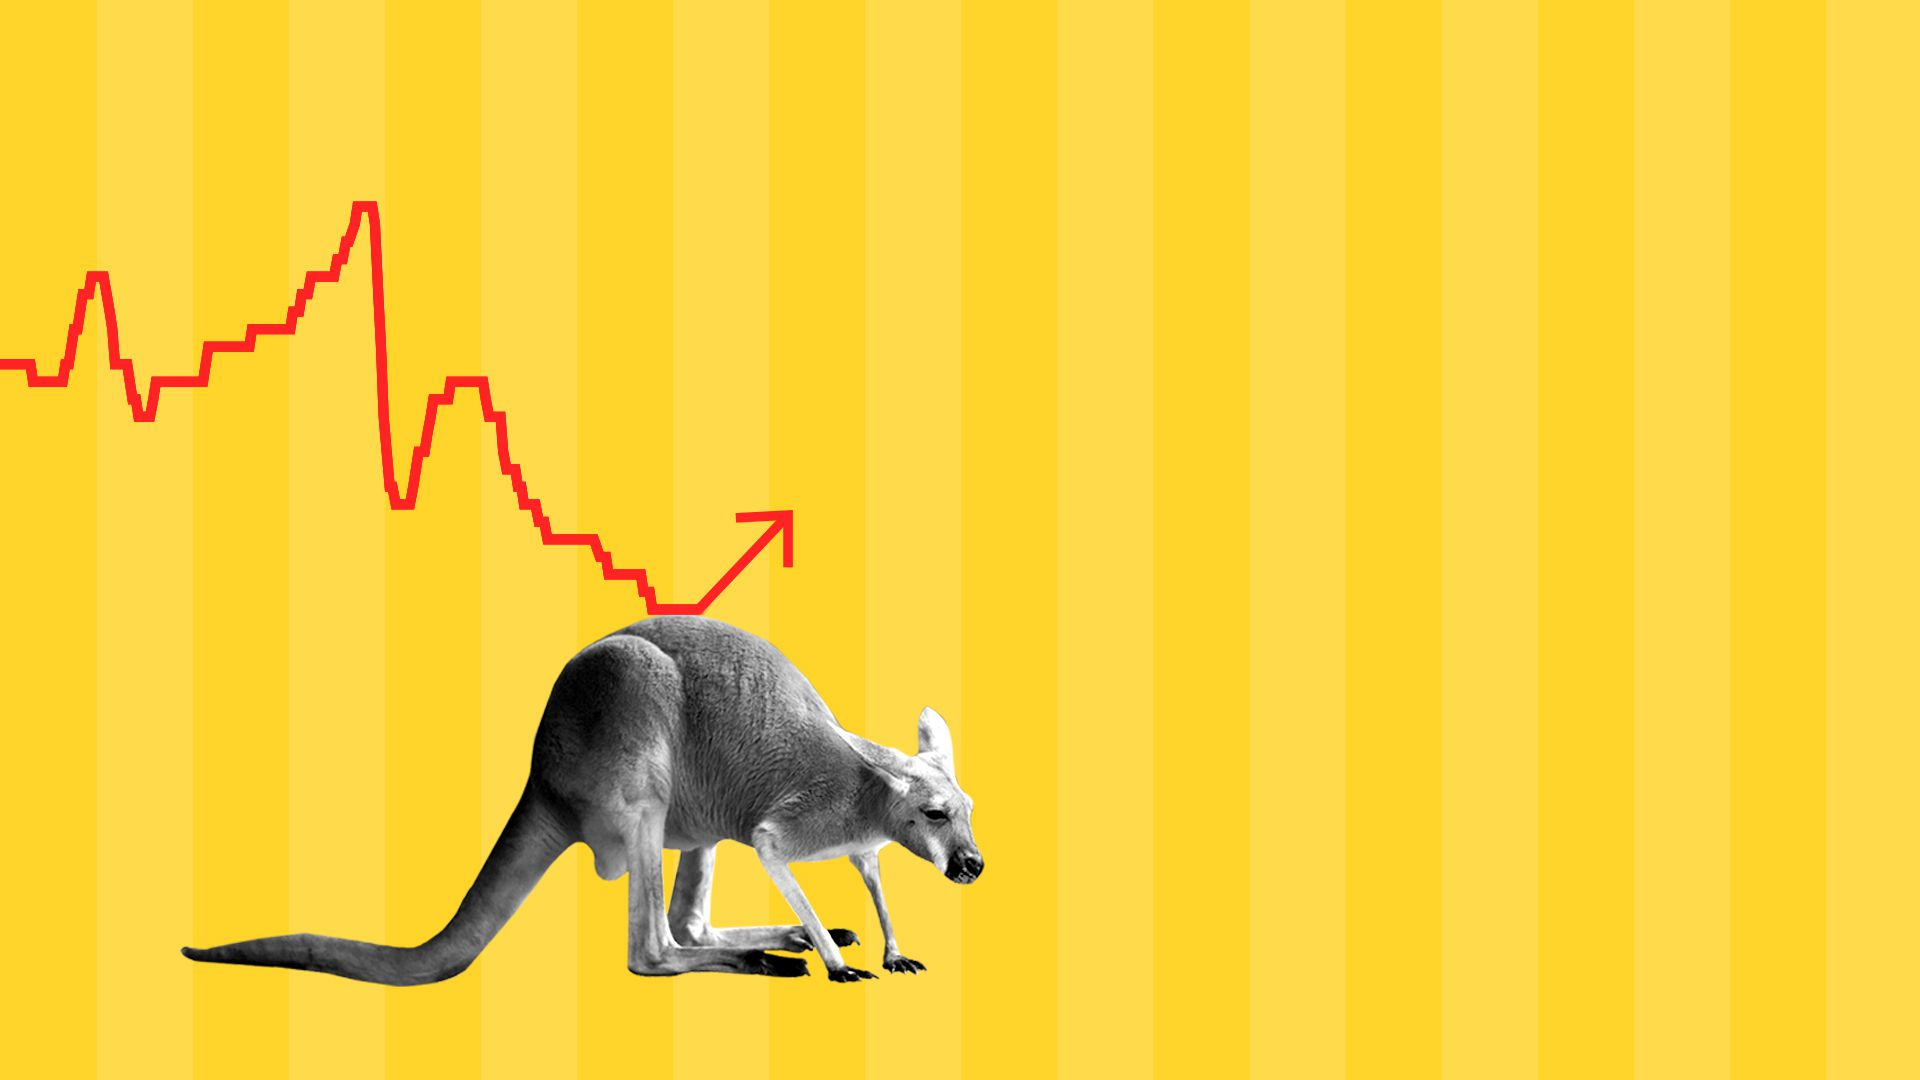 Kangaroo pushing up a stock chart.